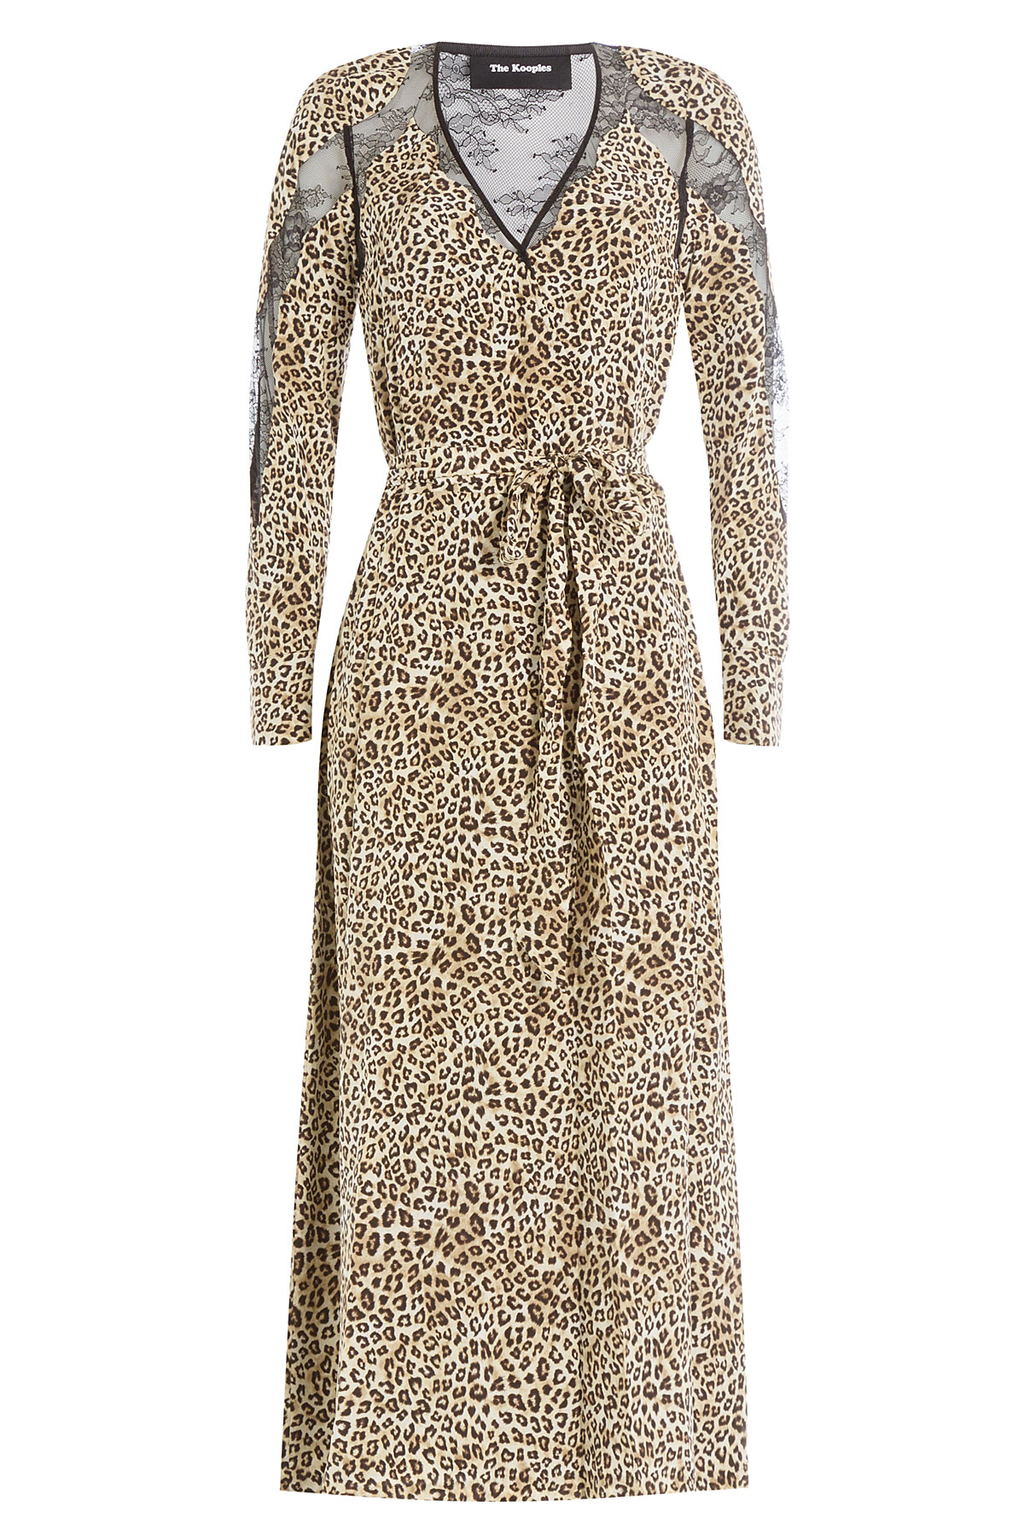 Animal Printed Silk Dress With Lace - style: shift; length: calf length; neckline: low v-neck; waist detail: belted waist/tie at waist/drawstring; predominant colour: stone; secondary colour: black; occasions: evening, creative work; fit: soft a-line; fibres: silk - 100%; sleeve length: long sleeve; sleeve style: standard; texture group: silky - light; pattern type: fabric; pattern size: standard; pattern: animal print; embellishment: lace; multicoloured: multicoloured; season: s/s 2016; wardrobe: highlight; embellishment location: back, sleeve/cuff